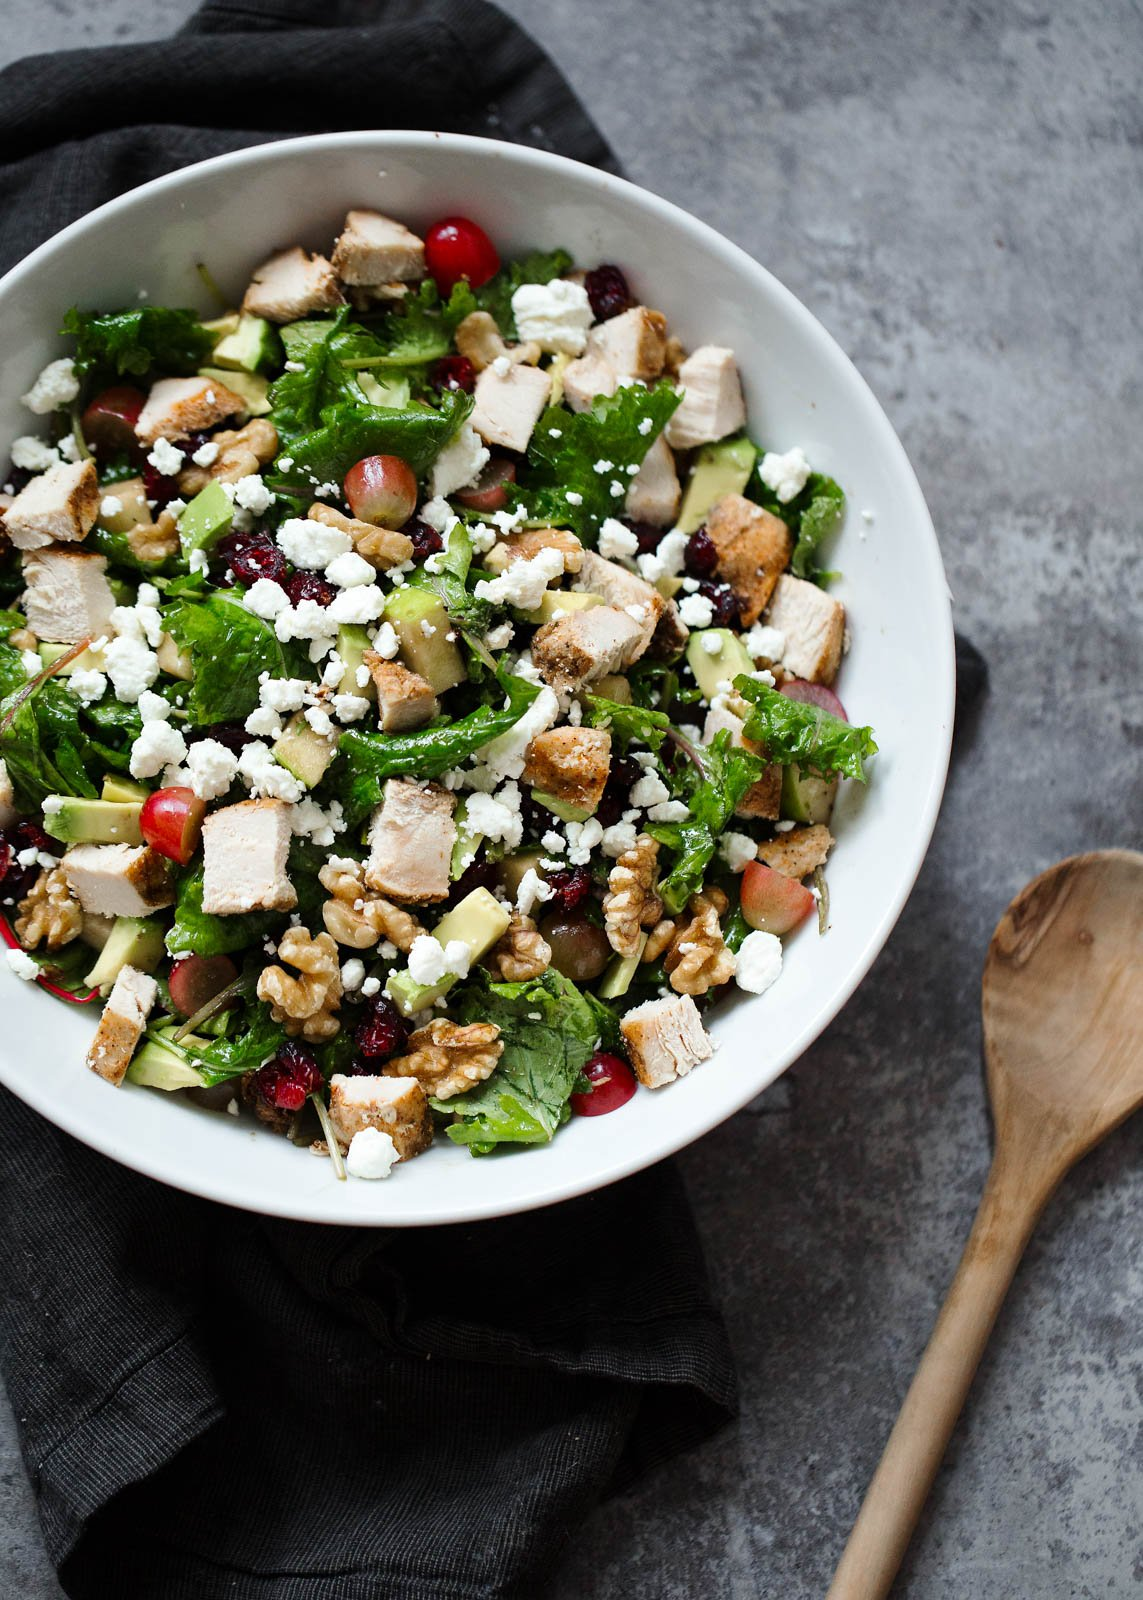 kale waldorf salad in a bowl